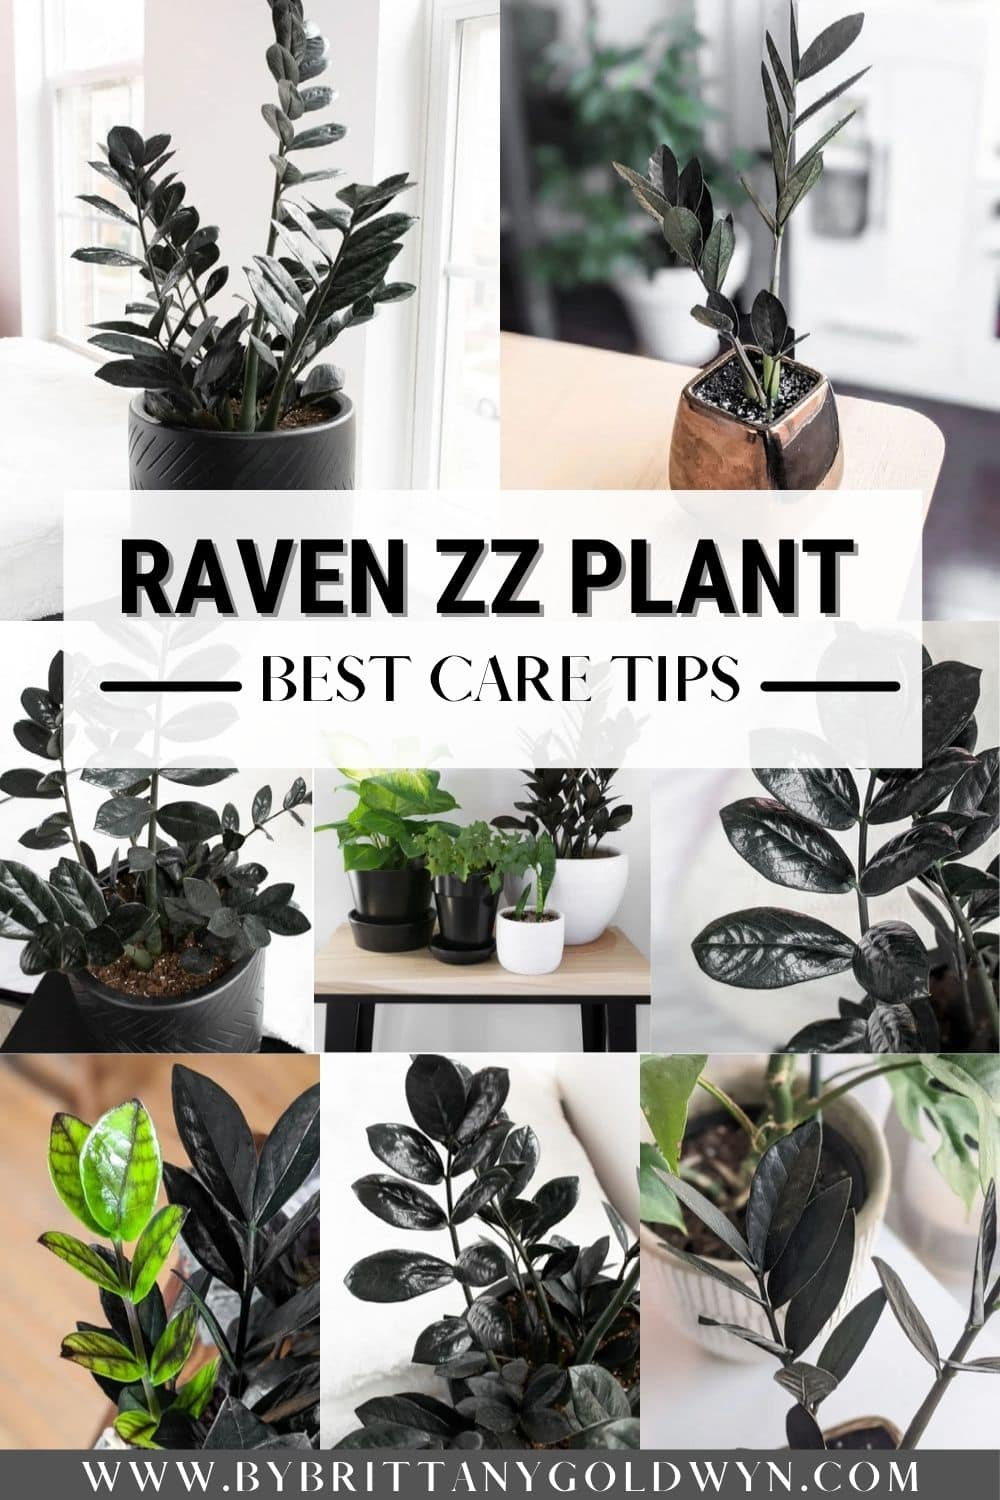 Image collage of raven zz plants with text overlay